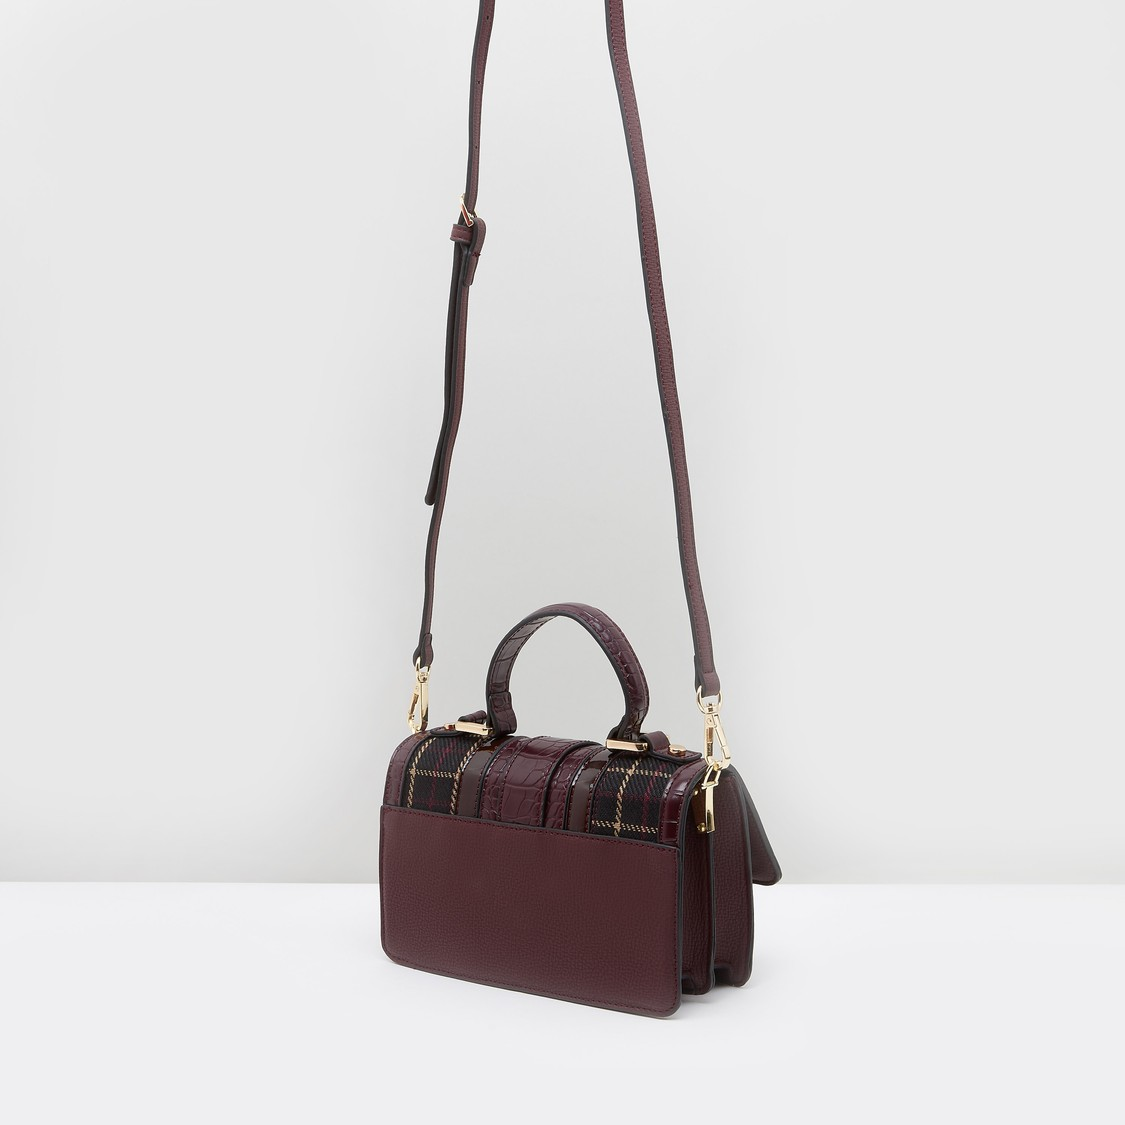 Textured Satchel Bag with Snap Button Closure